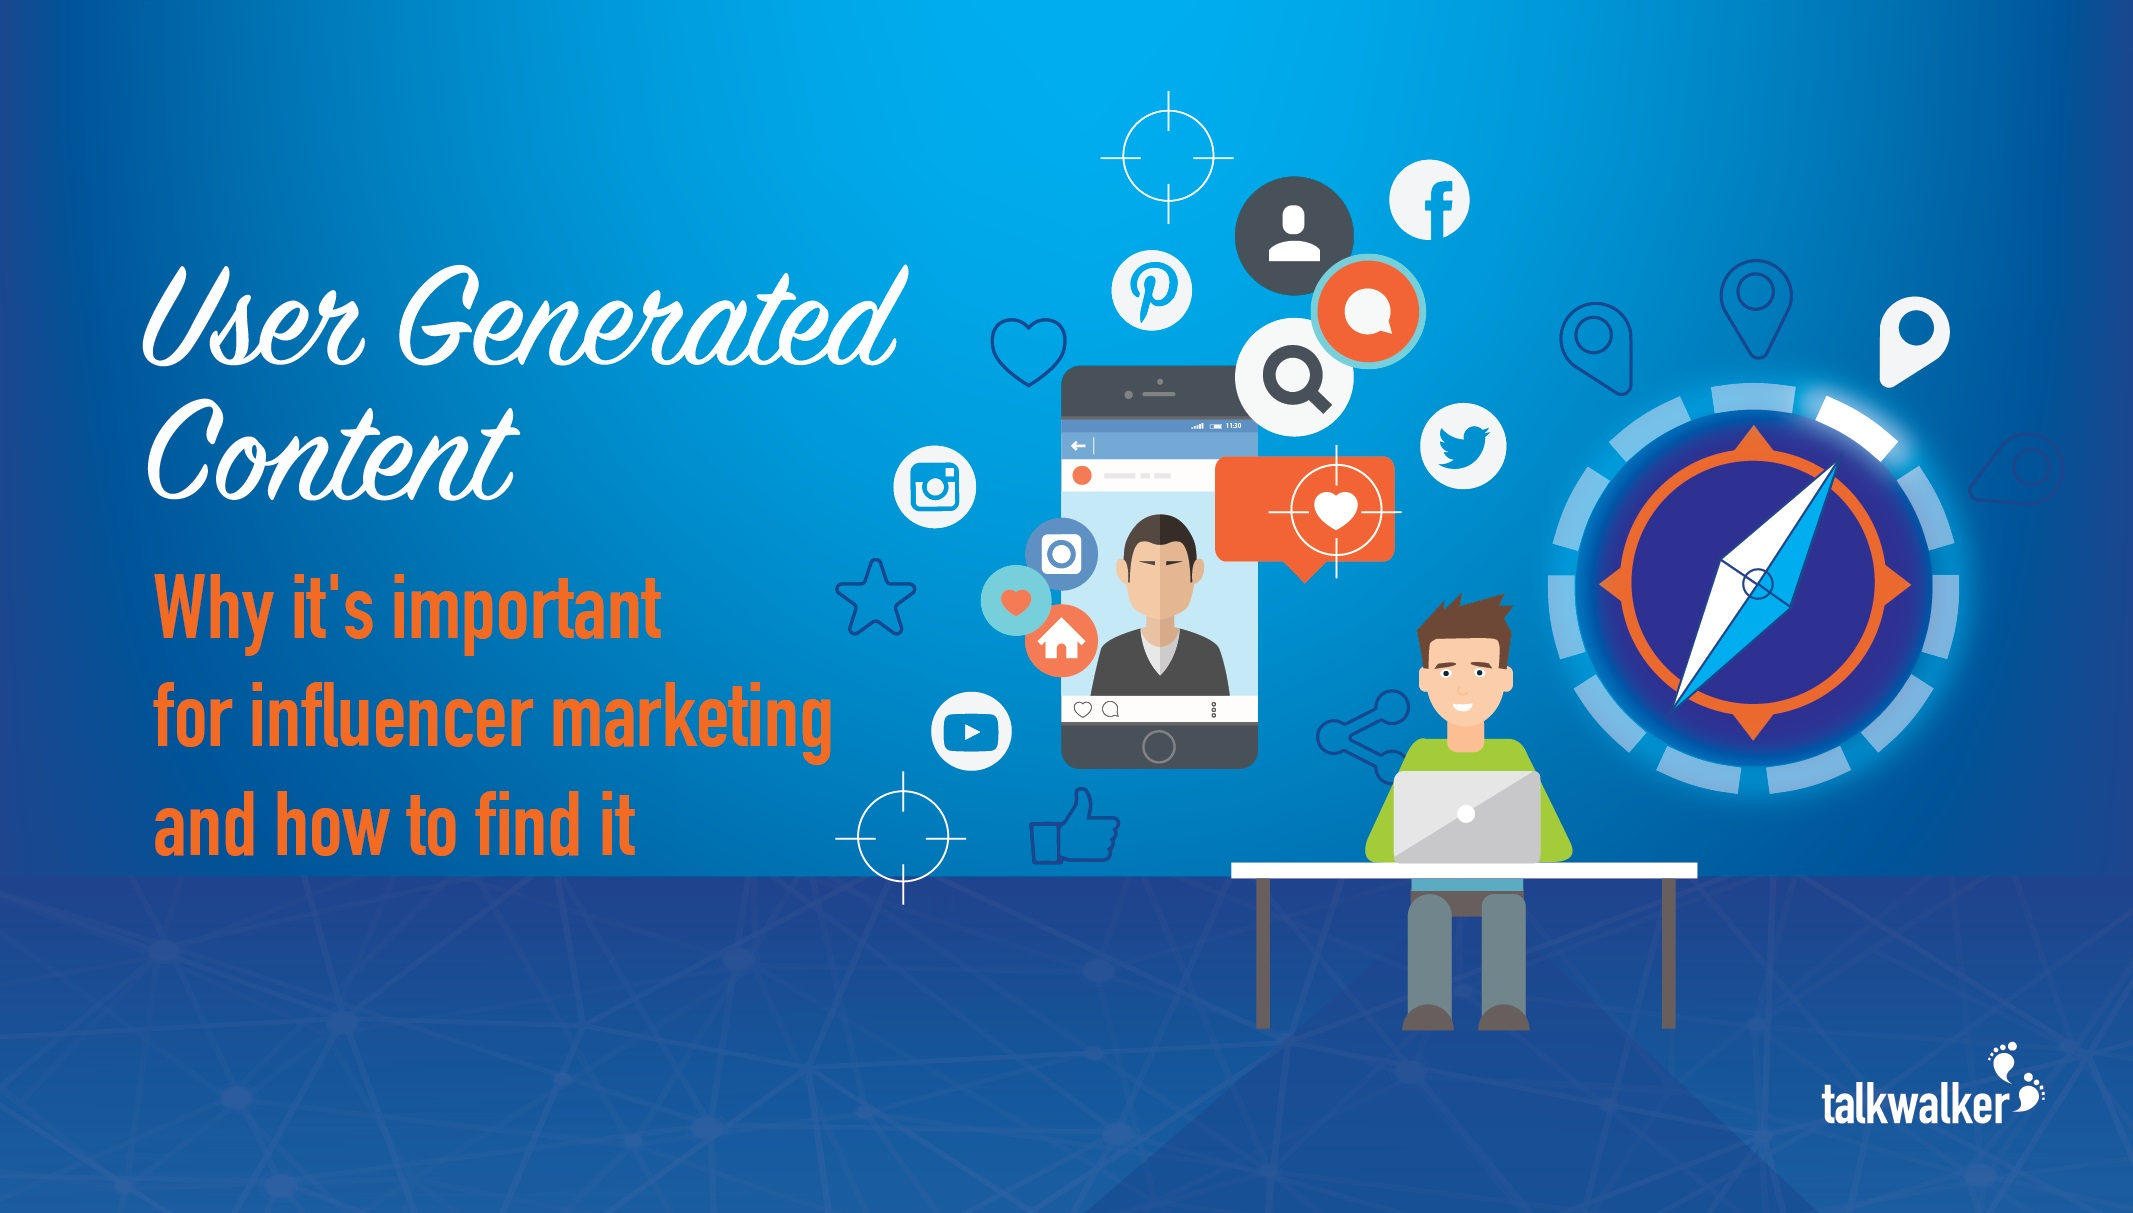 Three Key Reasons Why User Generated Content Works for Influencer Marketing